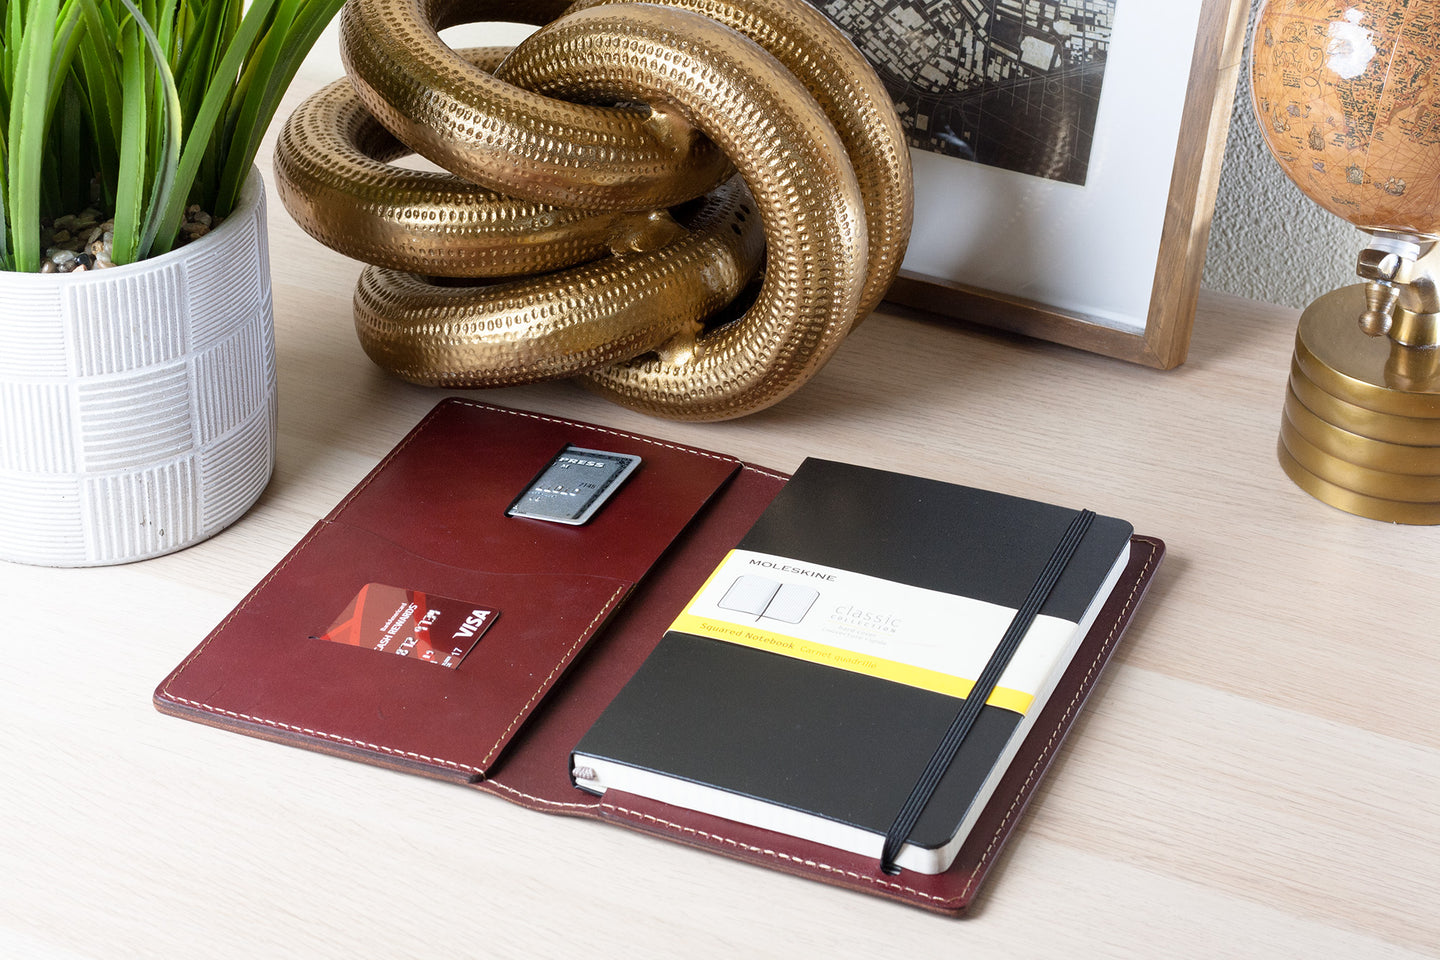 moleskine classic large hard cover journal in burgundy color